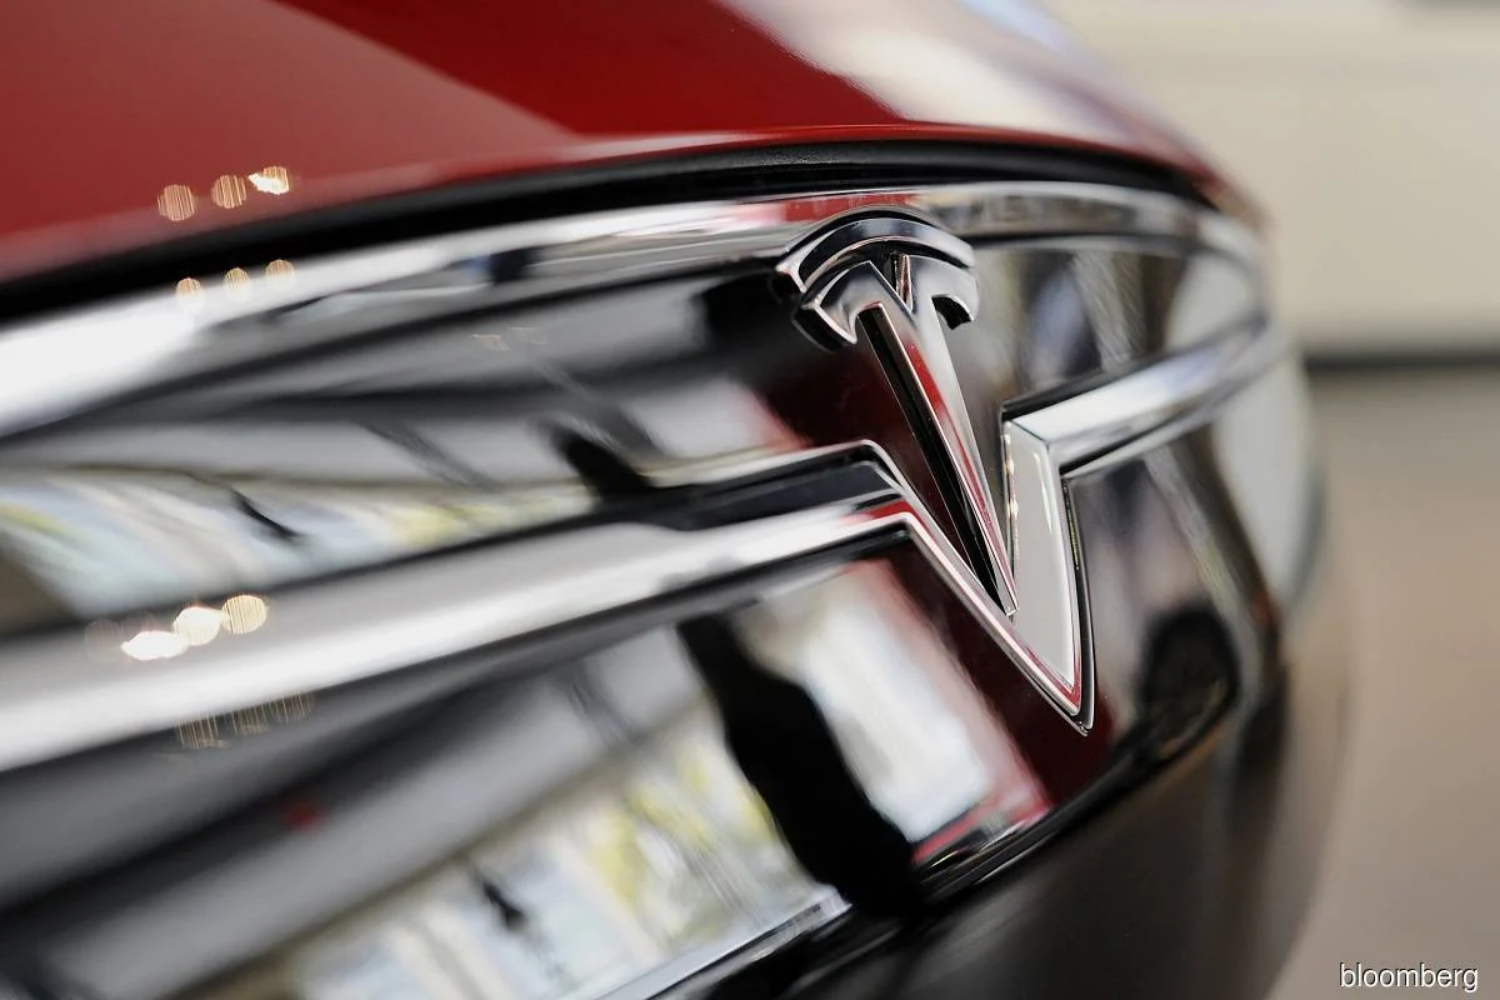 Tesla hunts for design chief to create cars for China — sources